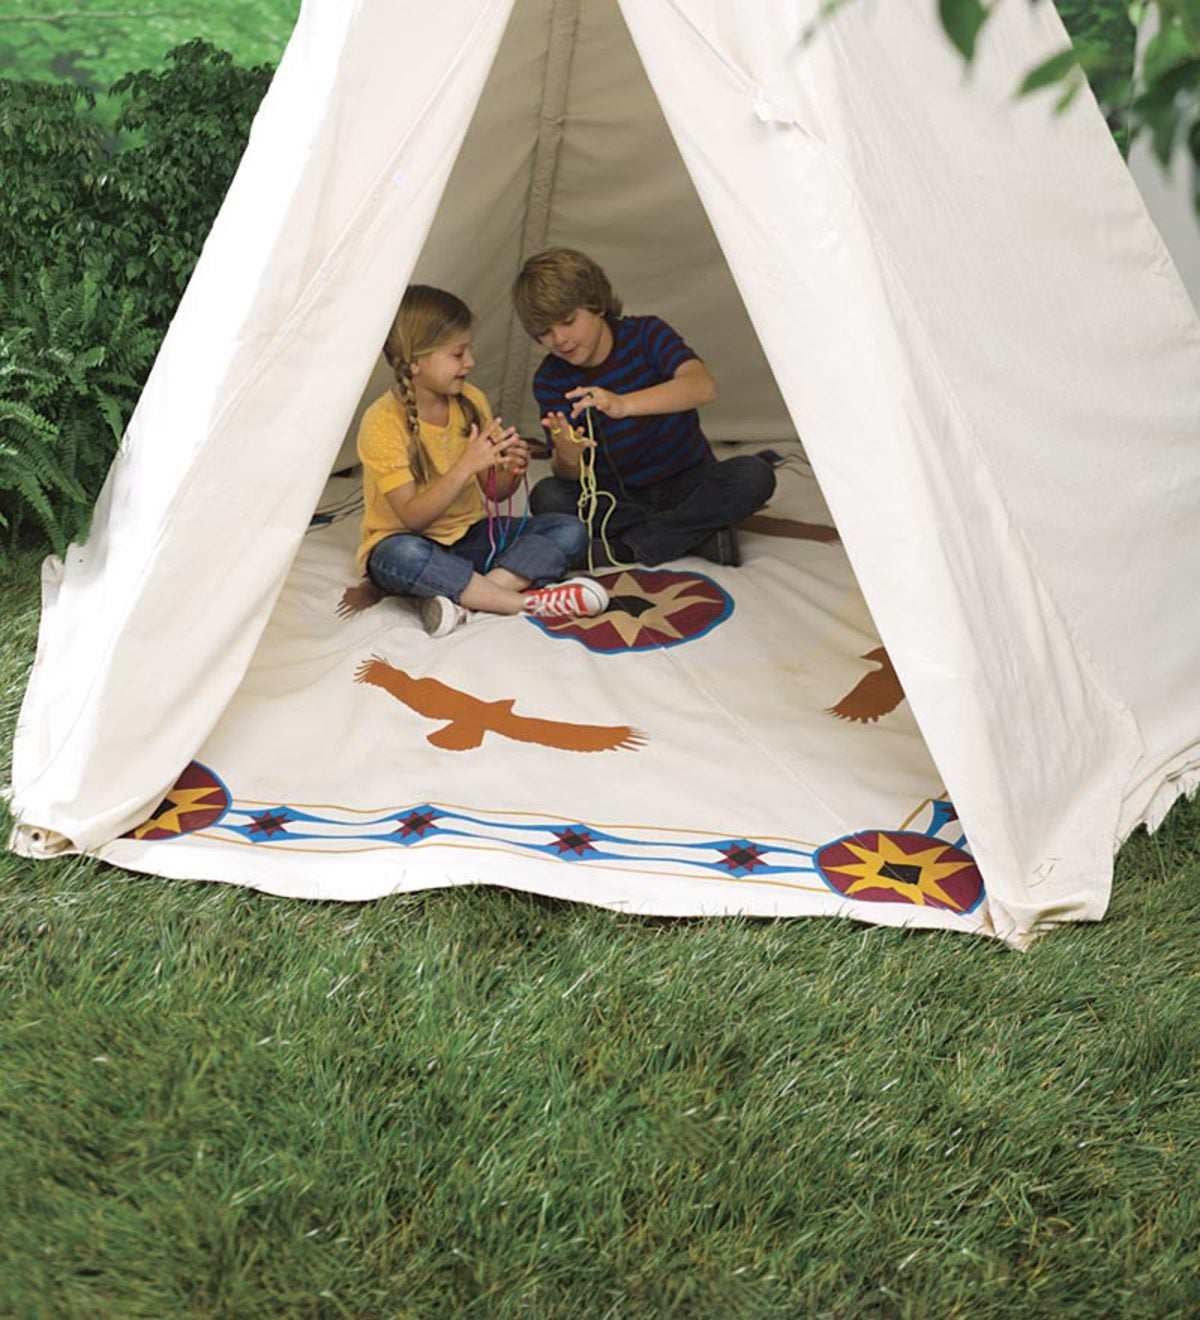 12' Family-Sized Teepee Ground Cover and 12' Plug-In UL Teepee Lights